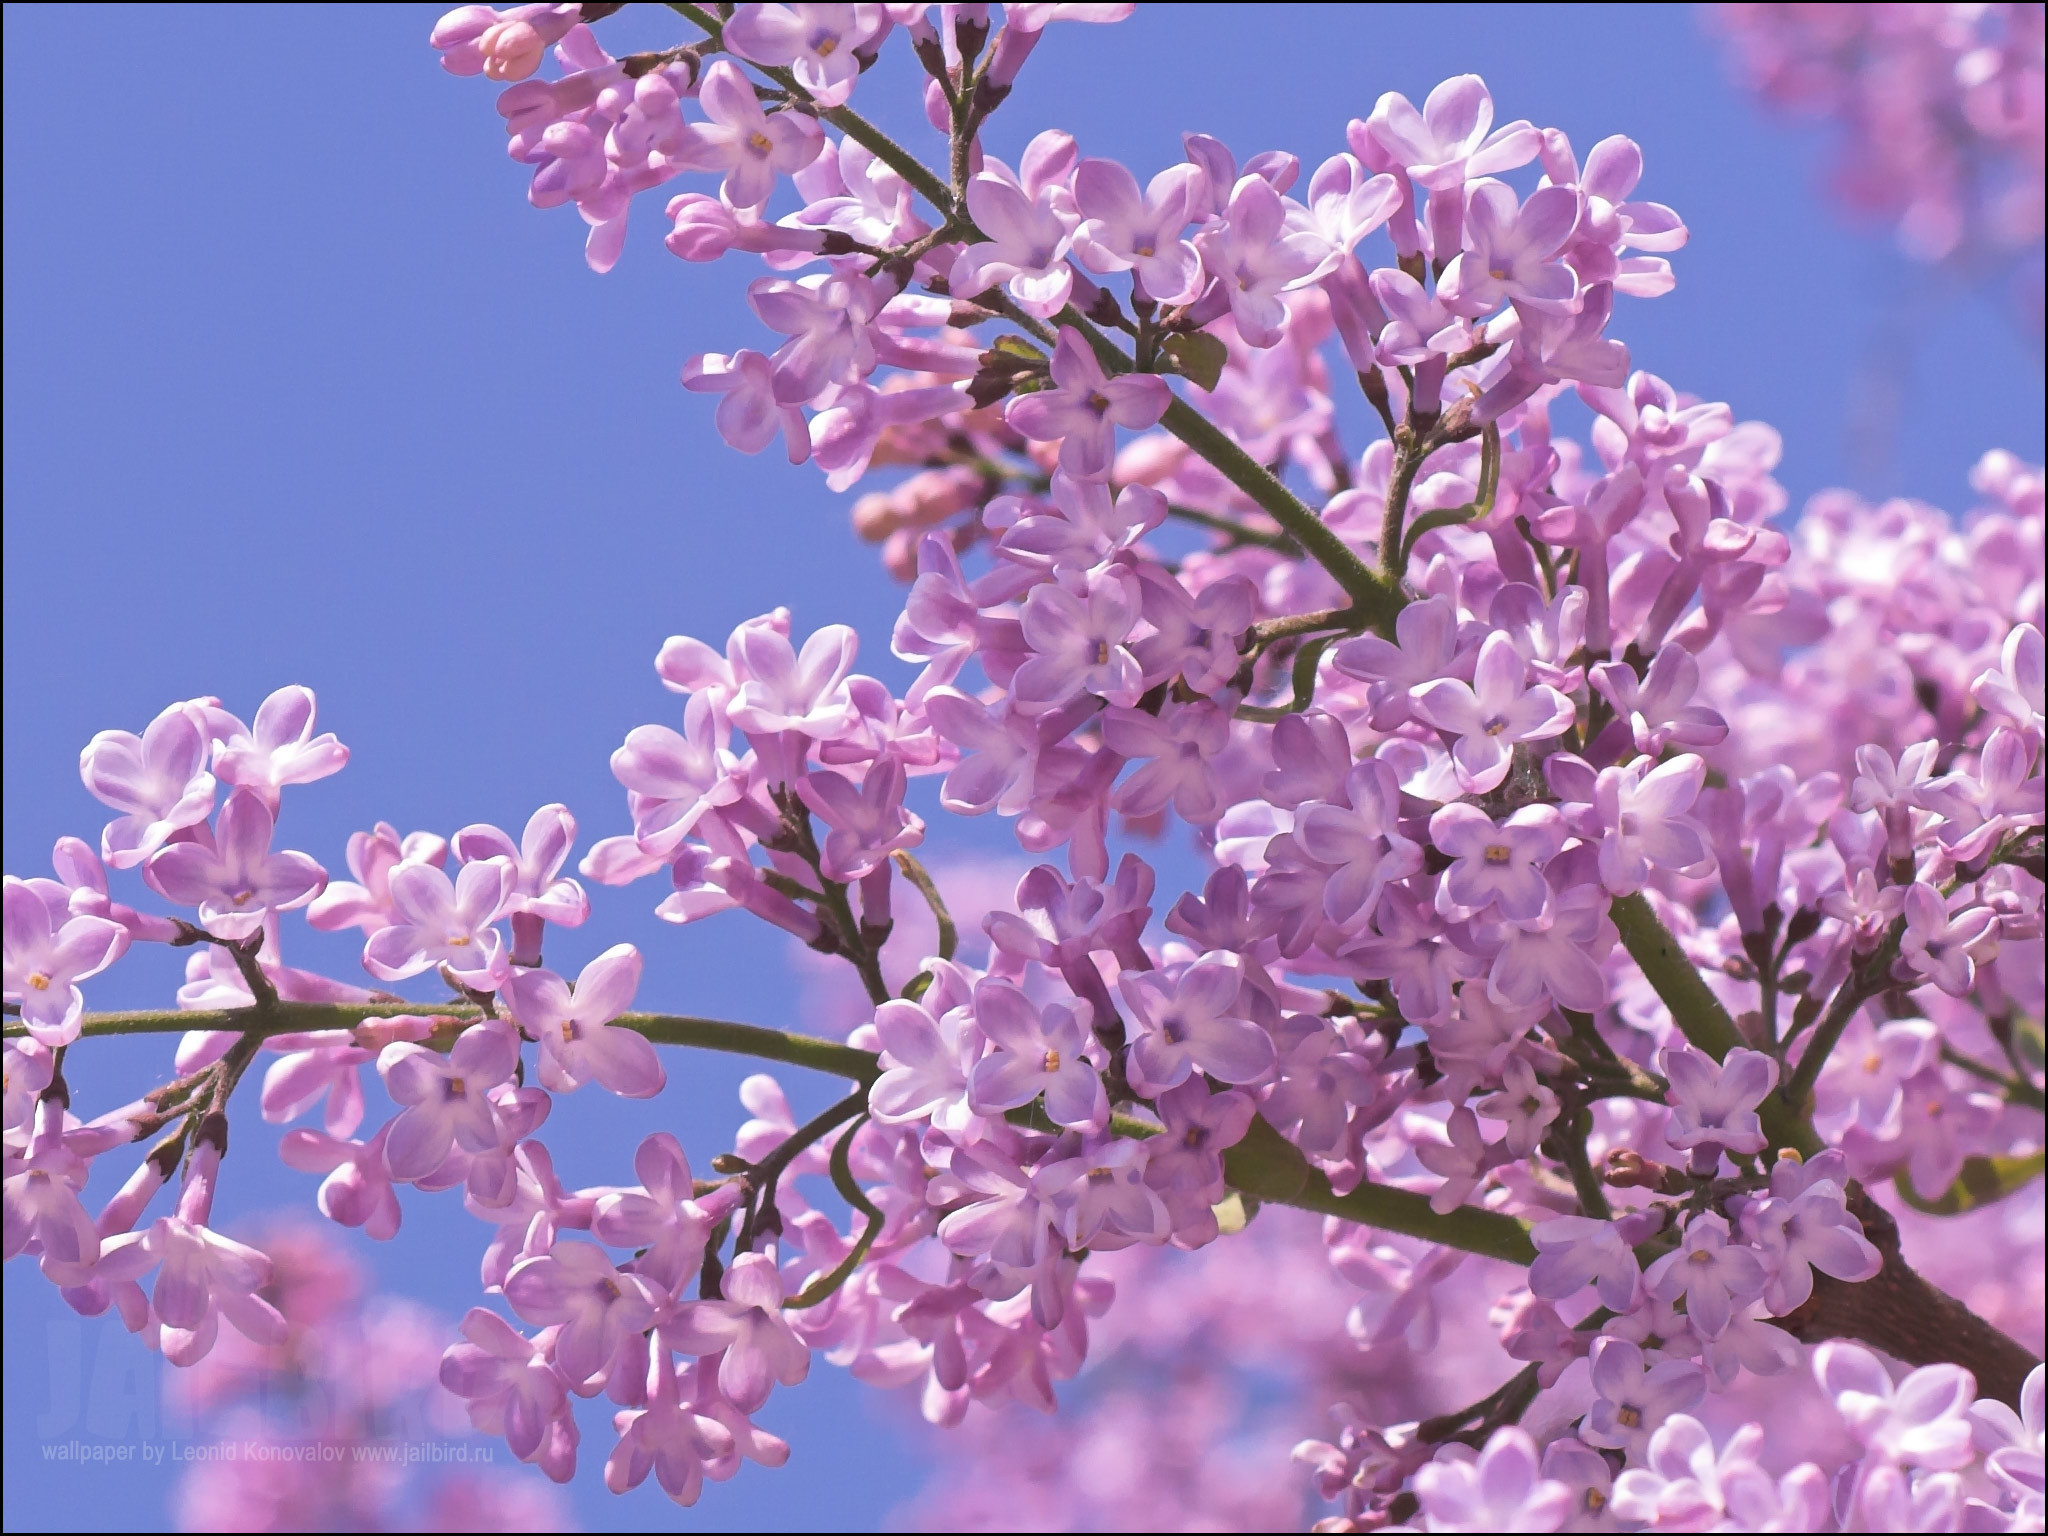 lilac - flowers Photo